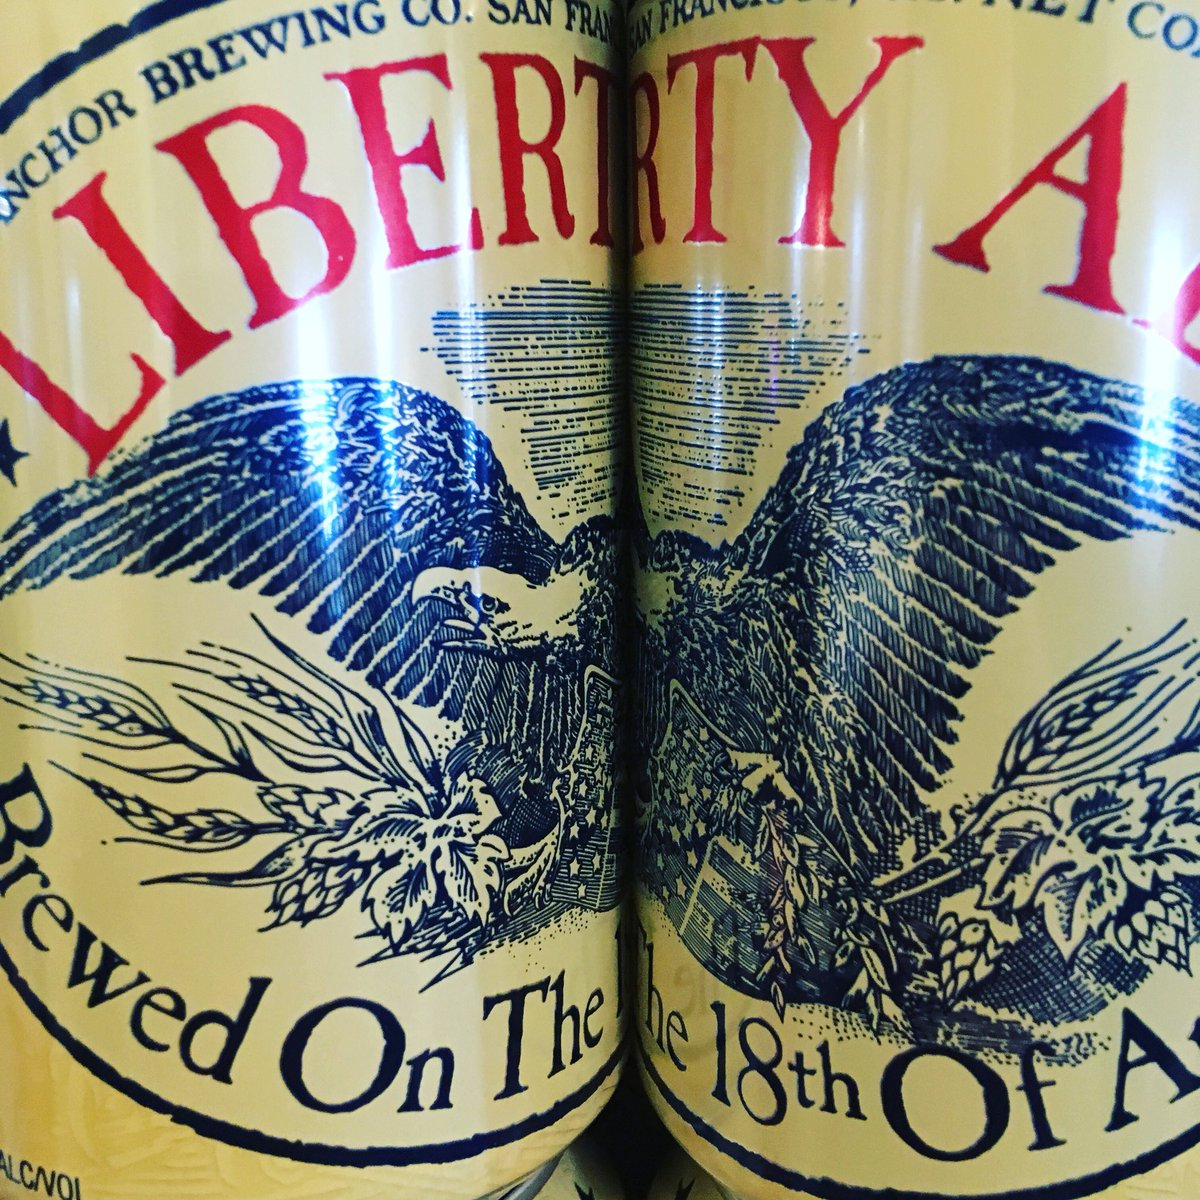 Give me liberty or give me beer! Maybe i'll take both ;) 20% off anchor's liberty ale all may! #headofsteamhuddersfield #tasty #americanpaleale #canbeer #craftbeer #freedom #liberty #hashtag